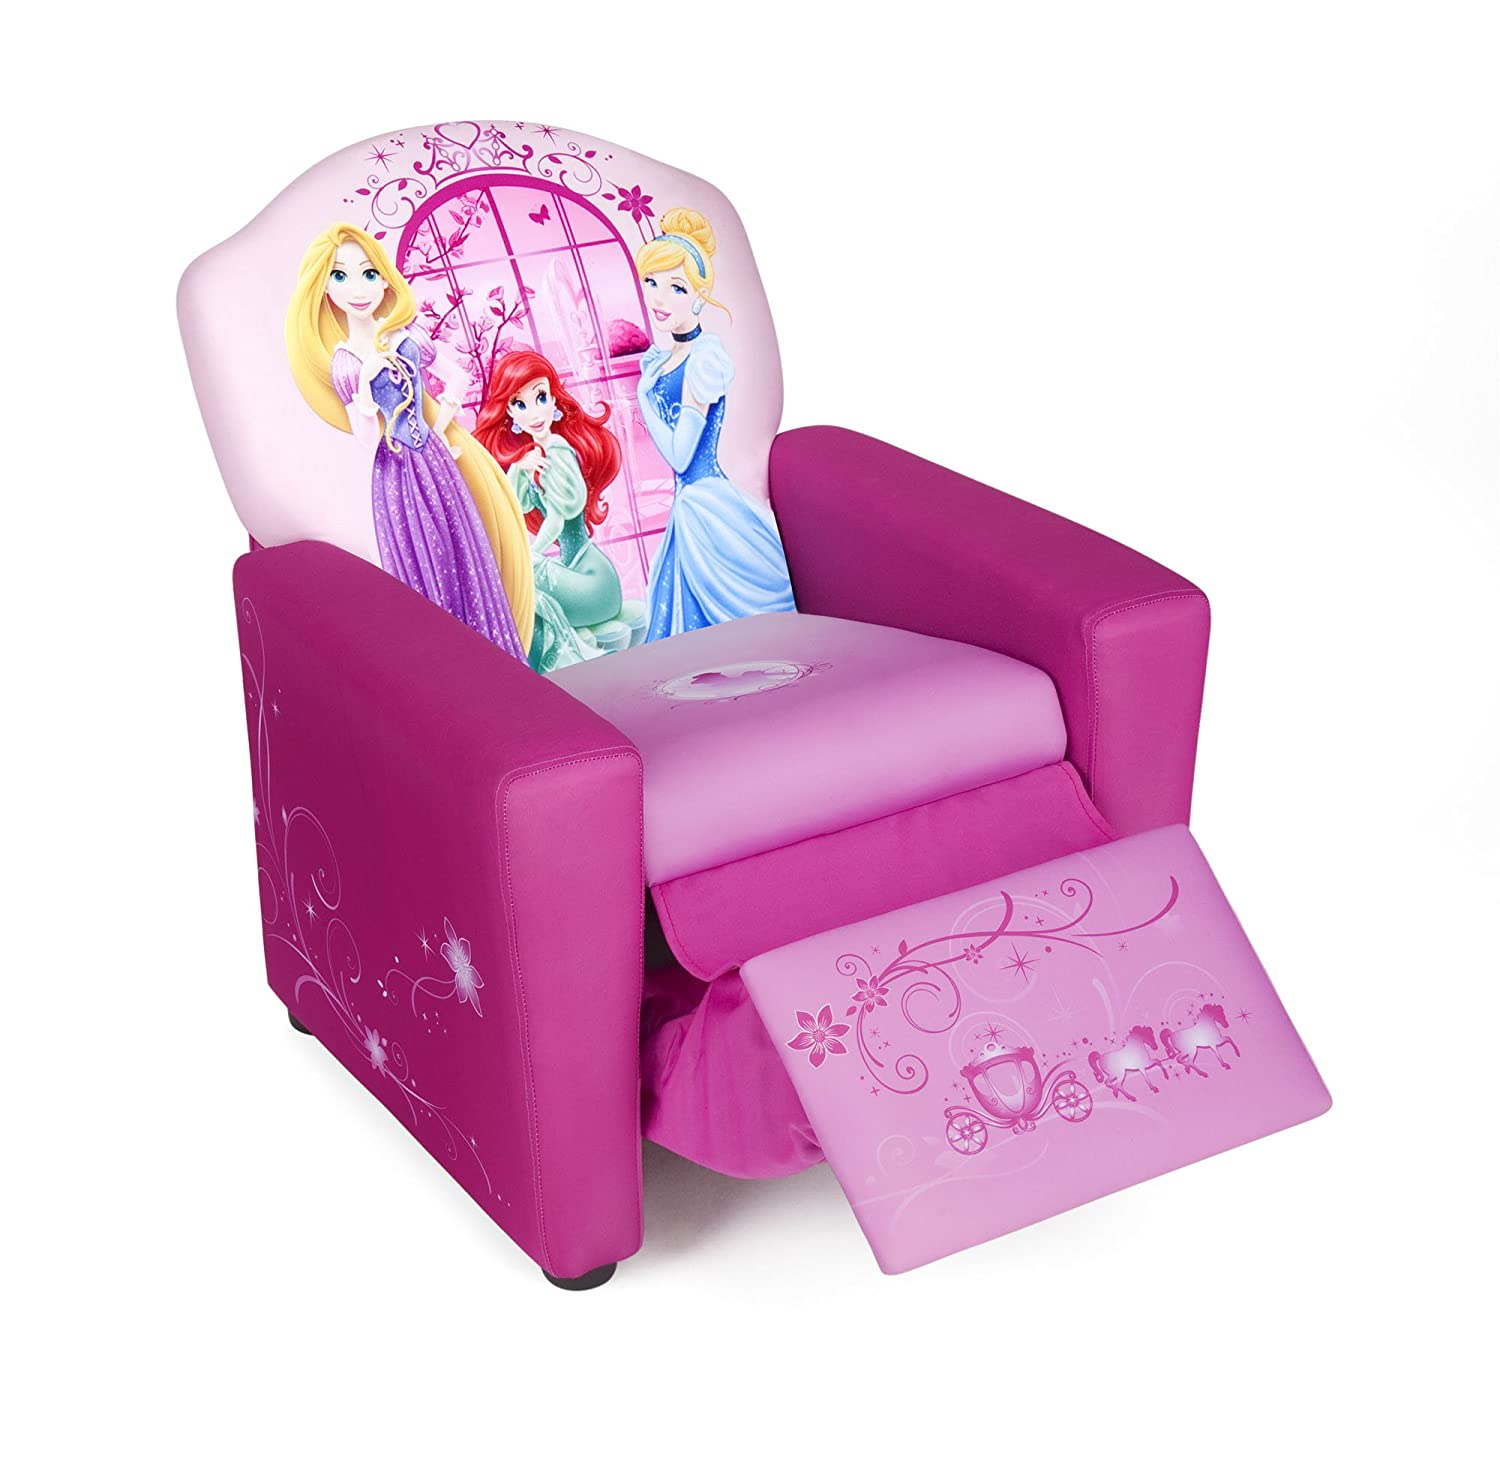 Amazon.com: Delta Children Productos de Disney Princess ...